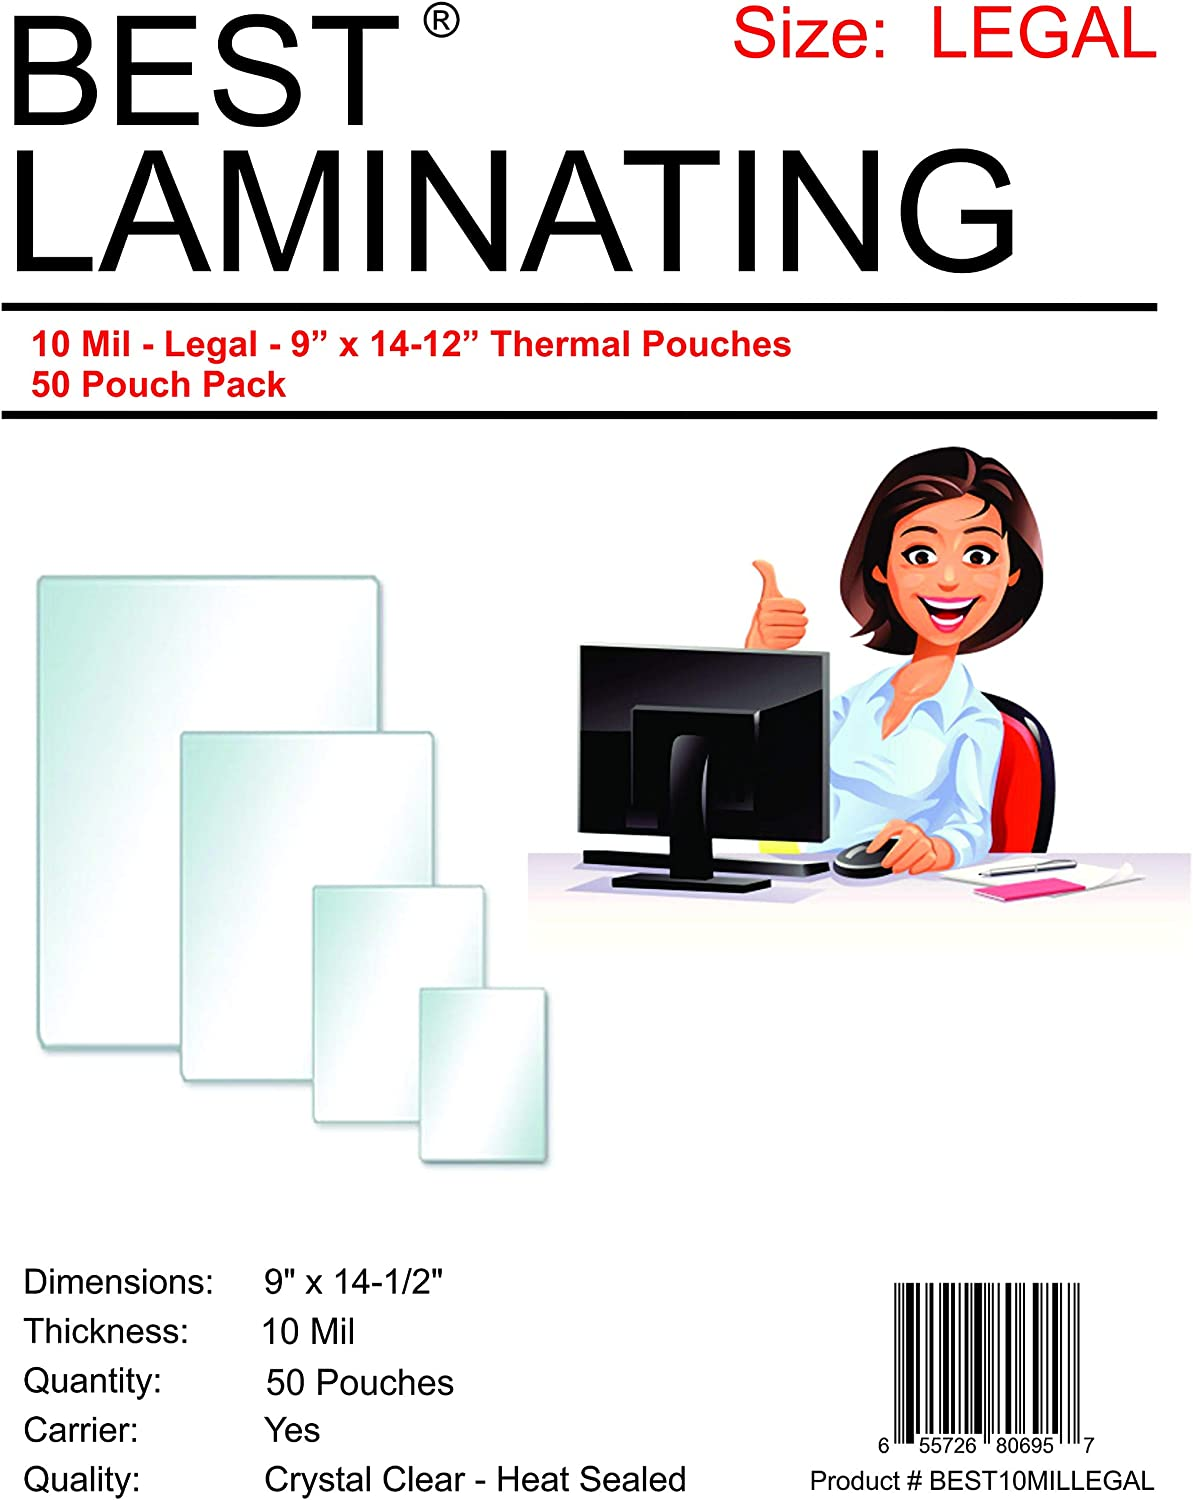 Best Laminating 10 Mil Clear Legal Size Thermal Laminating Pouches Qty 50 Pouches 9 X 14.5 inches